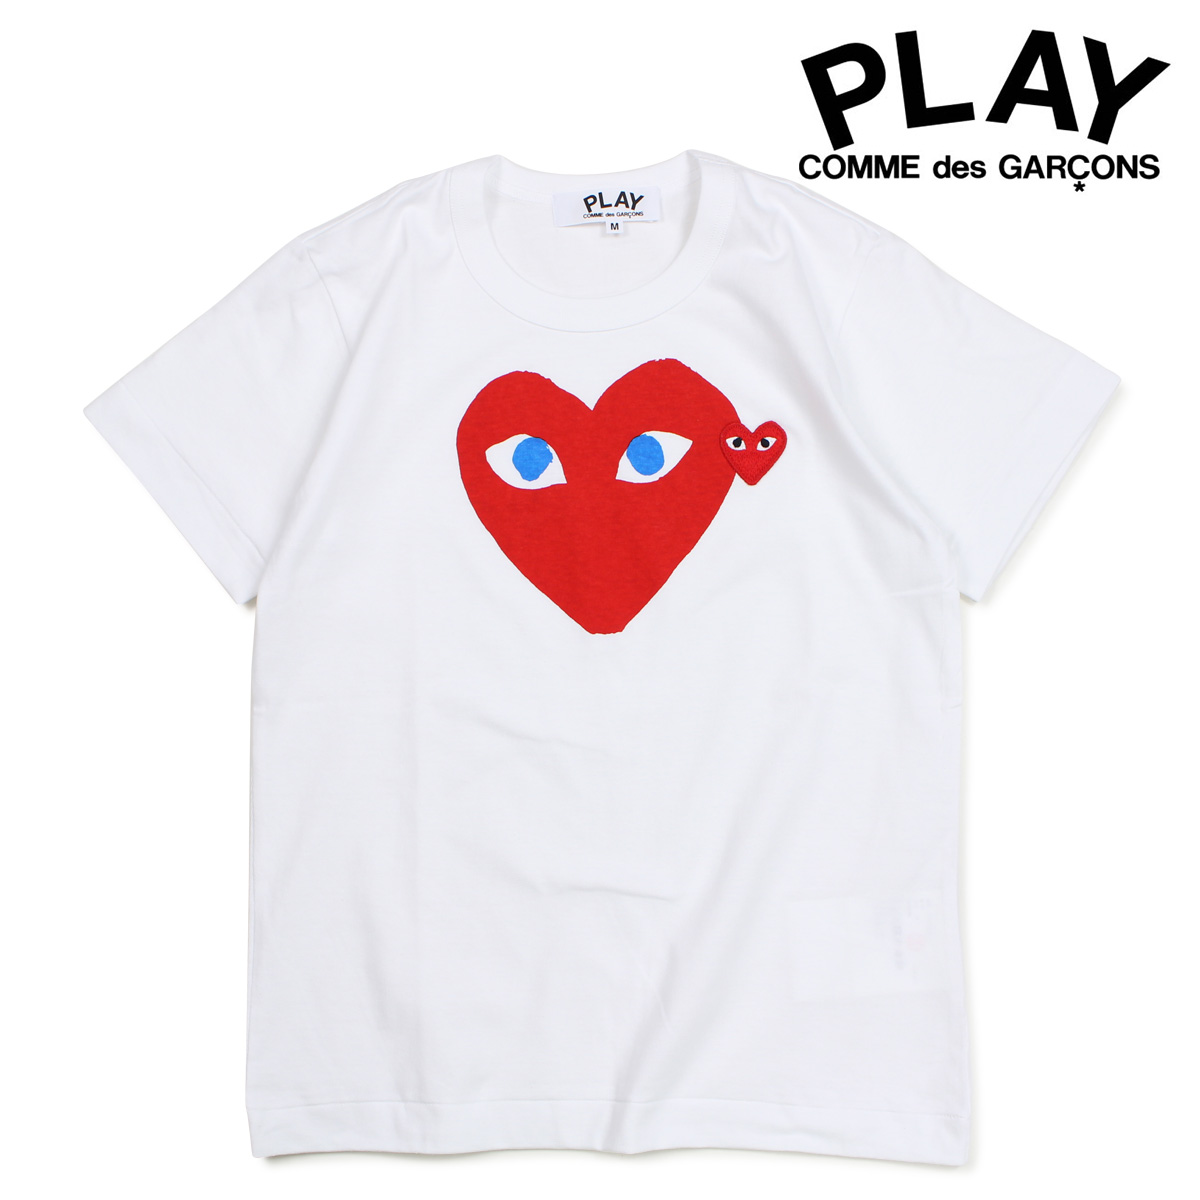 PLAY COMME des GARCONS RED HEART T-SHIRT コムデギャルソン Tシャツ 半袖 レディース ホワイト AZT085